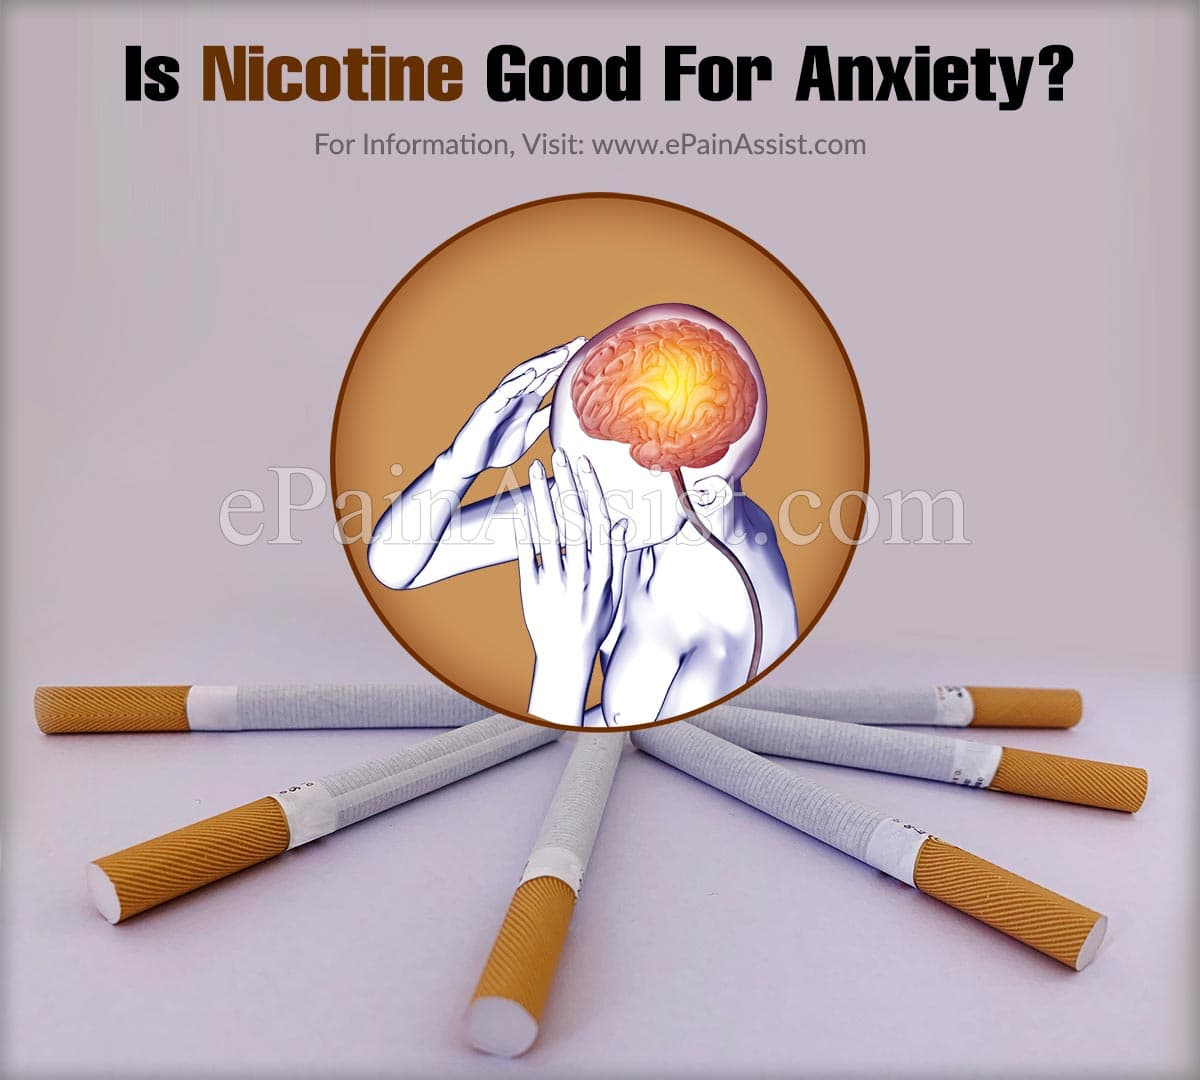 Is Nicotine Good For Anxiety?